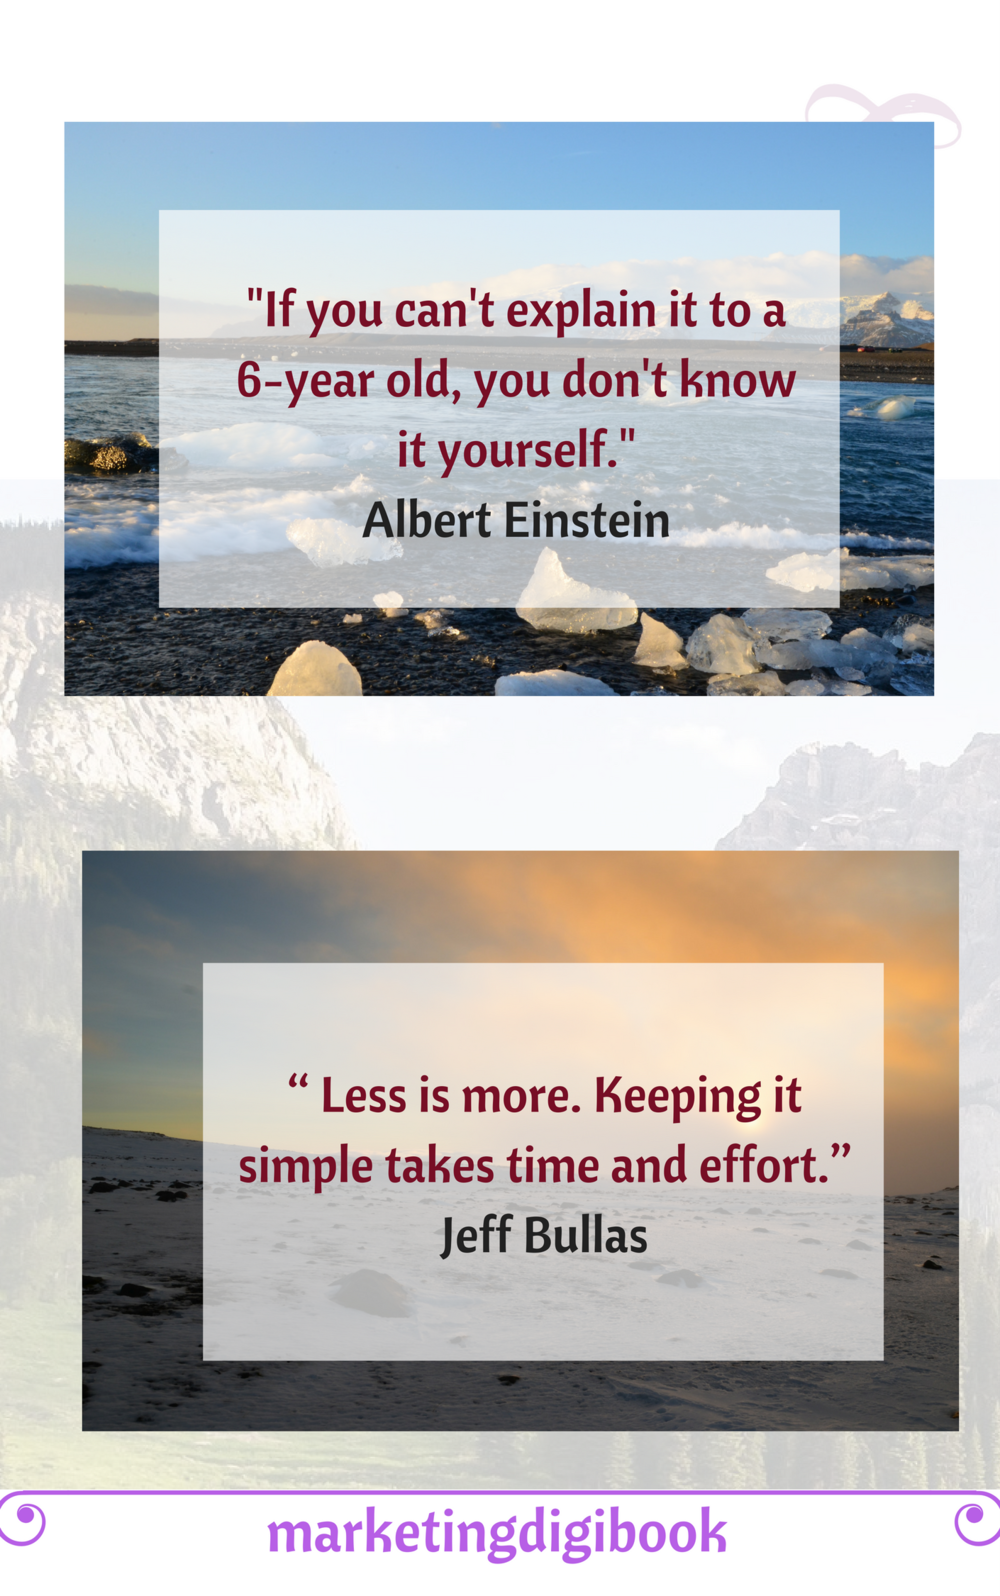 """"""" Less is more. Keeping it simple takes time and effort.""""  Jeff Bullas    """"If you can't explain it to a 6-year old, you don't know it yourself."""" - Albert Einstein"""